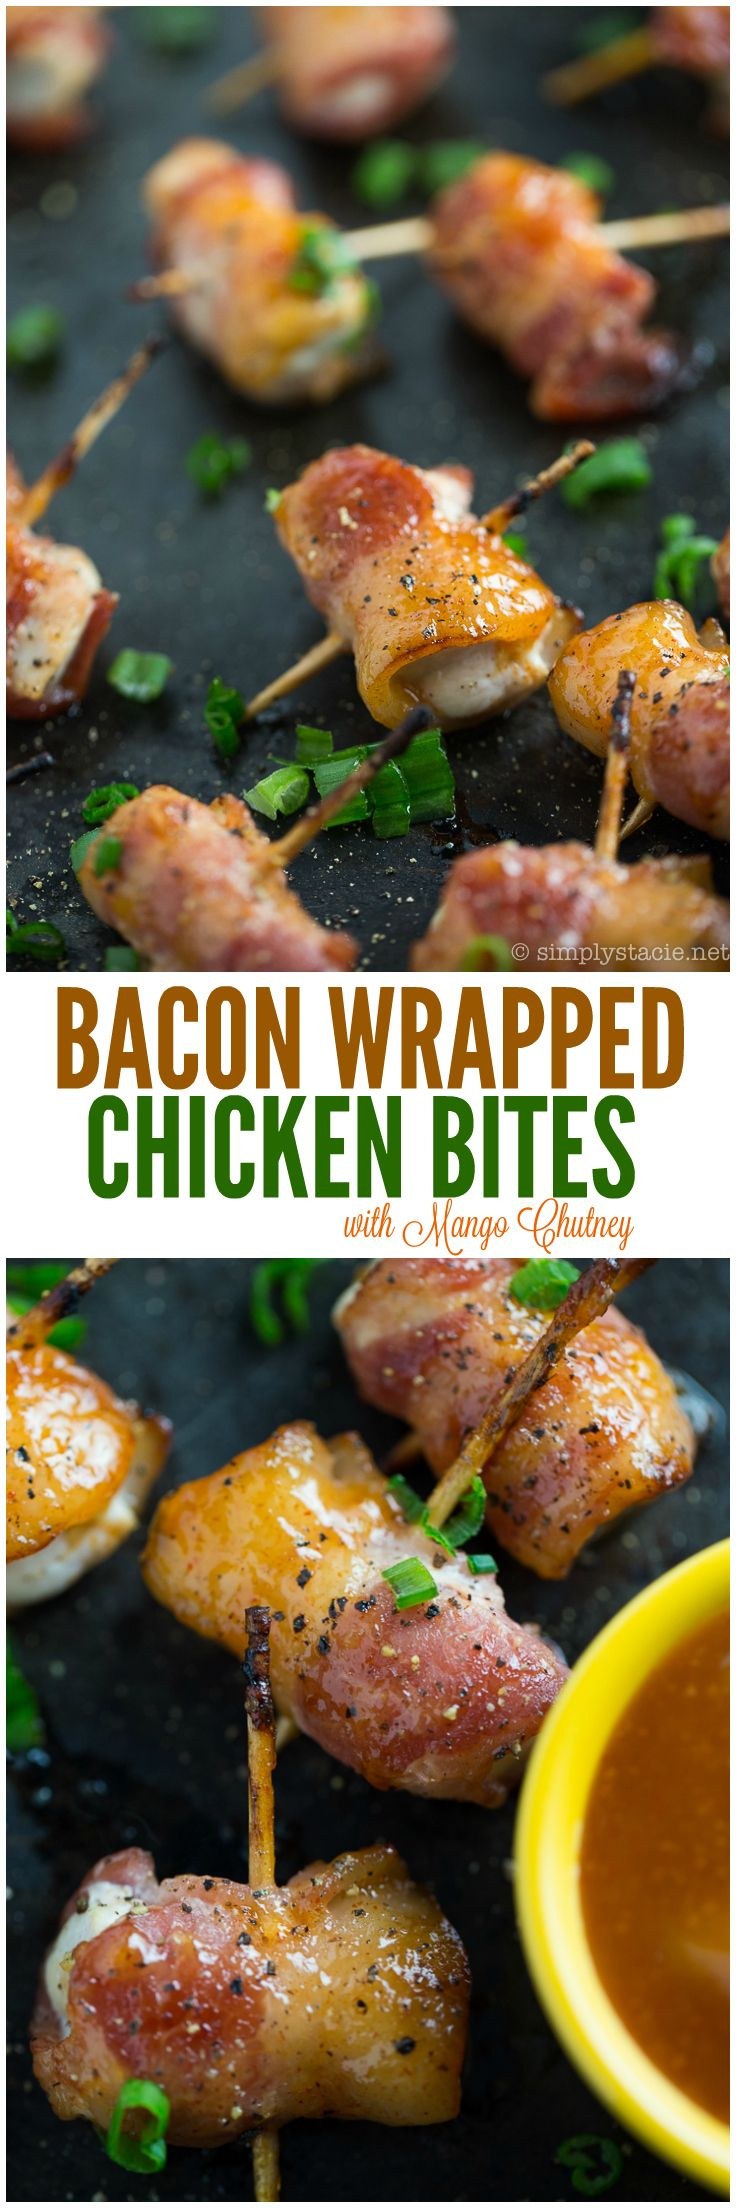 Sweet Mango Chutney is the perfect sauce for these delicious Bacon Wrapped Chicken Bites. Your holiday party will be complete with this appetizer recipe.